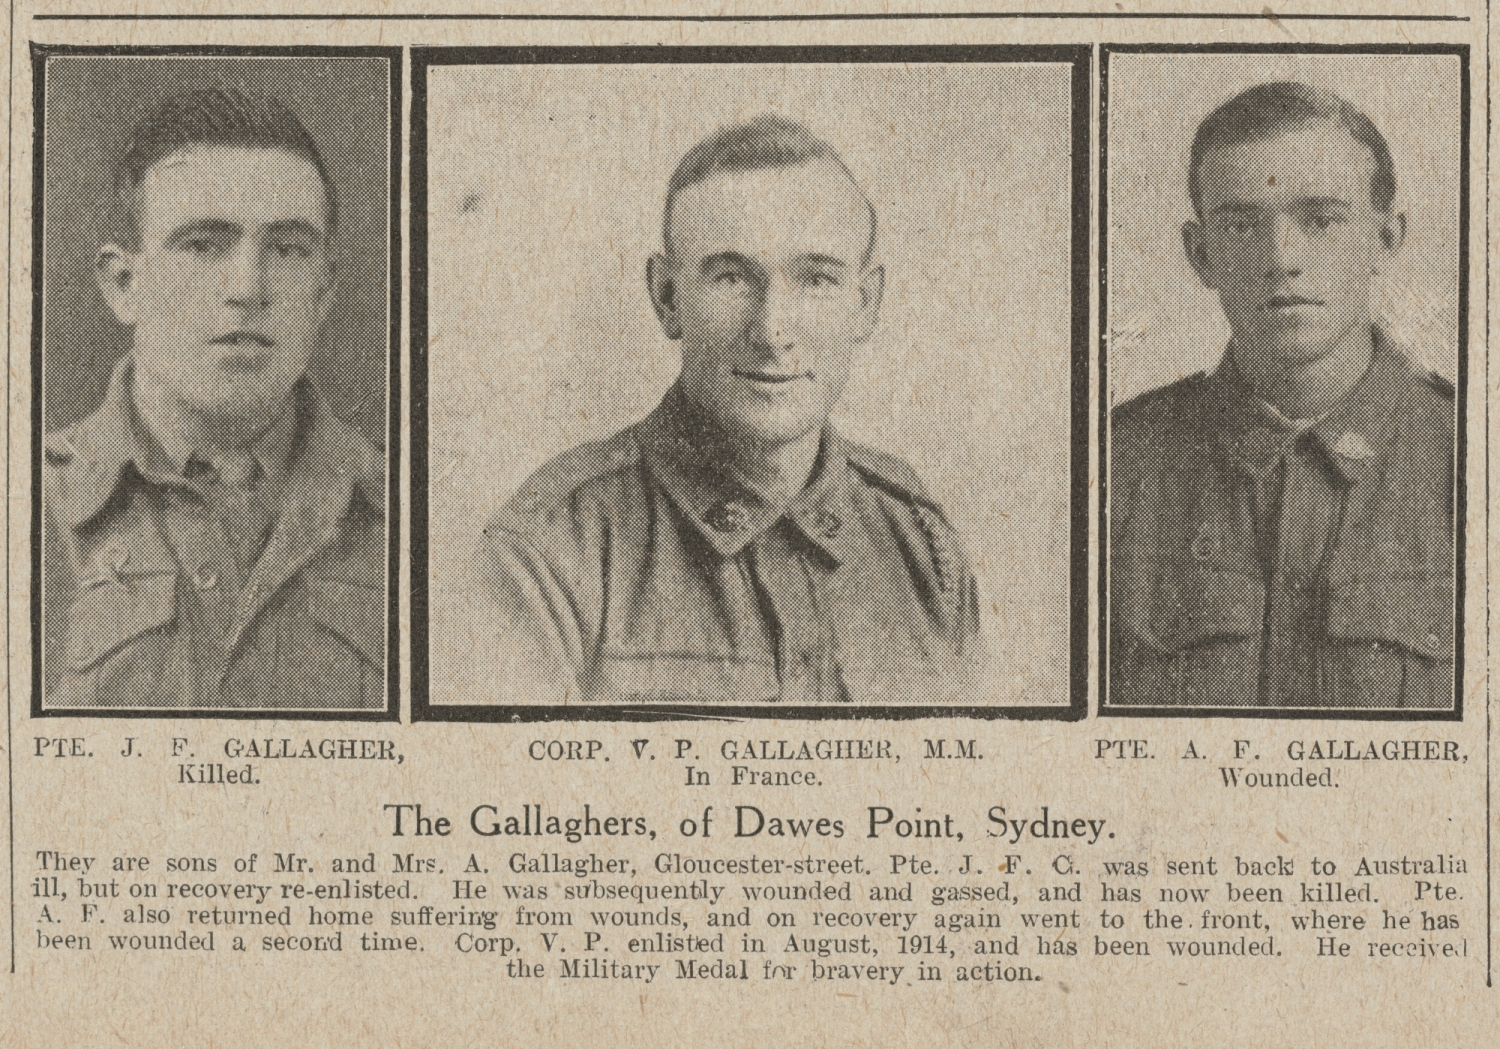 Newspaper clipping showing the three Gallagher boys.